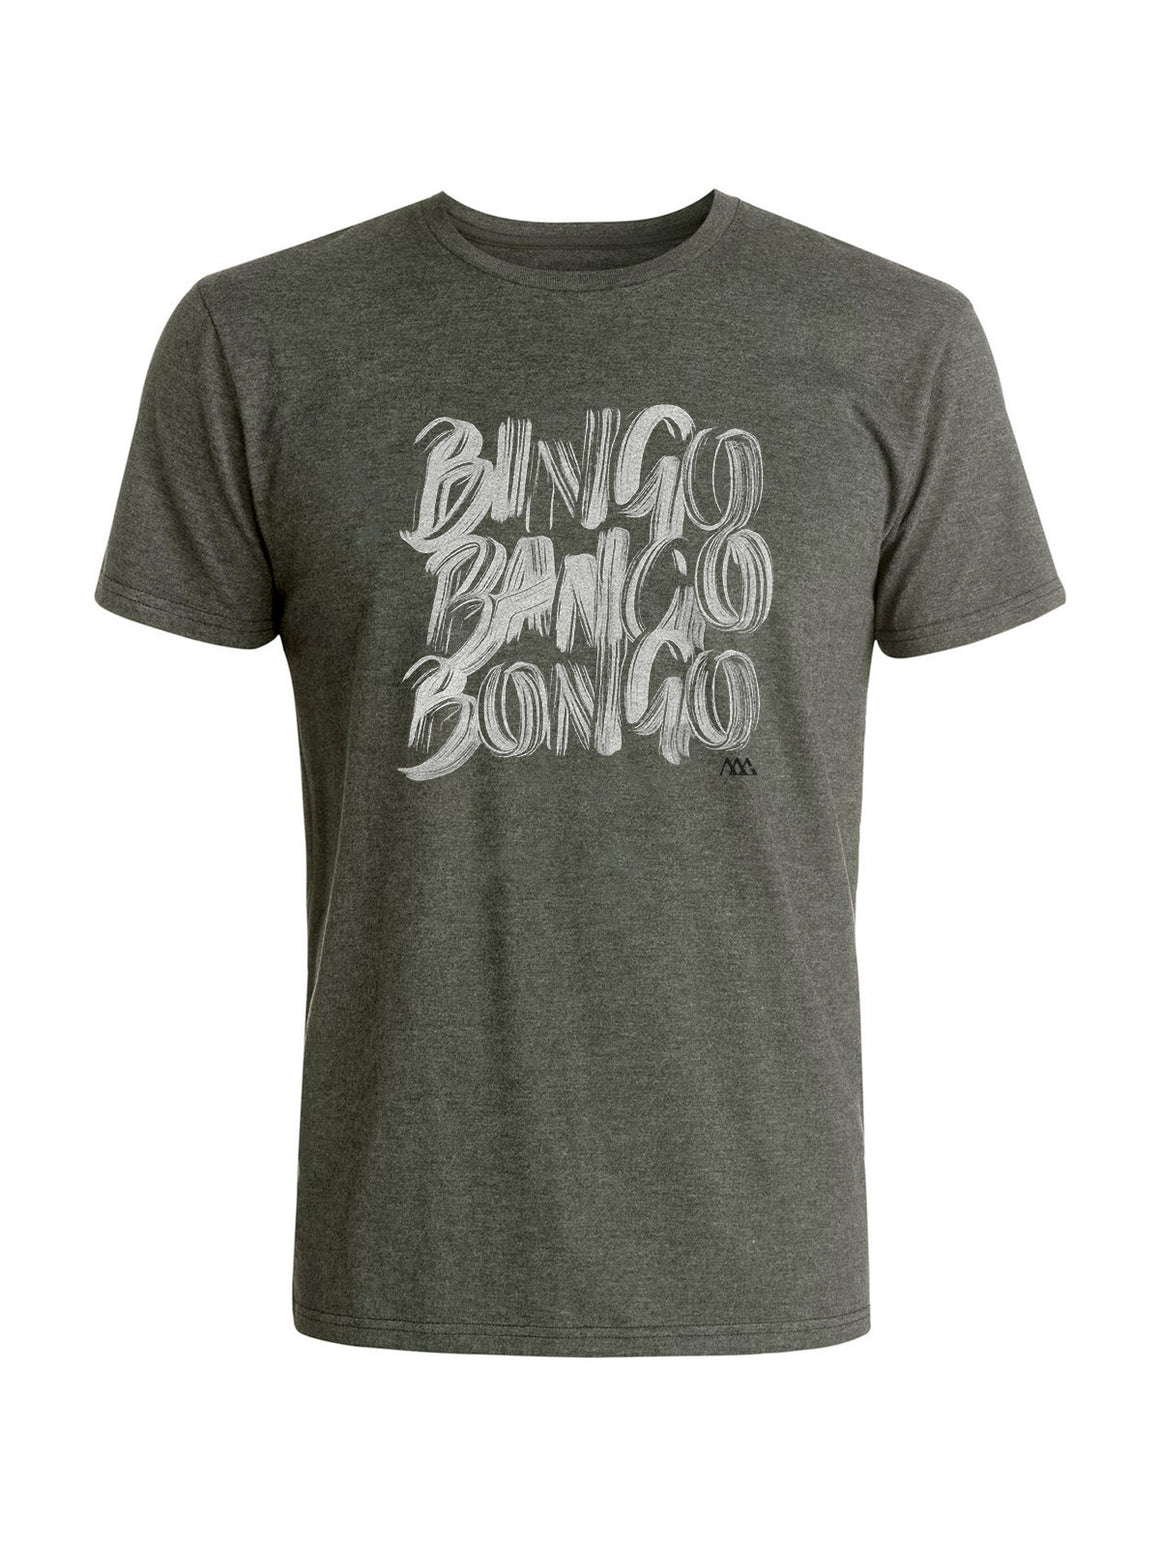 Bingo Tee Shirt - Platinum (White / Black)